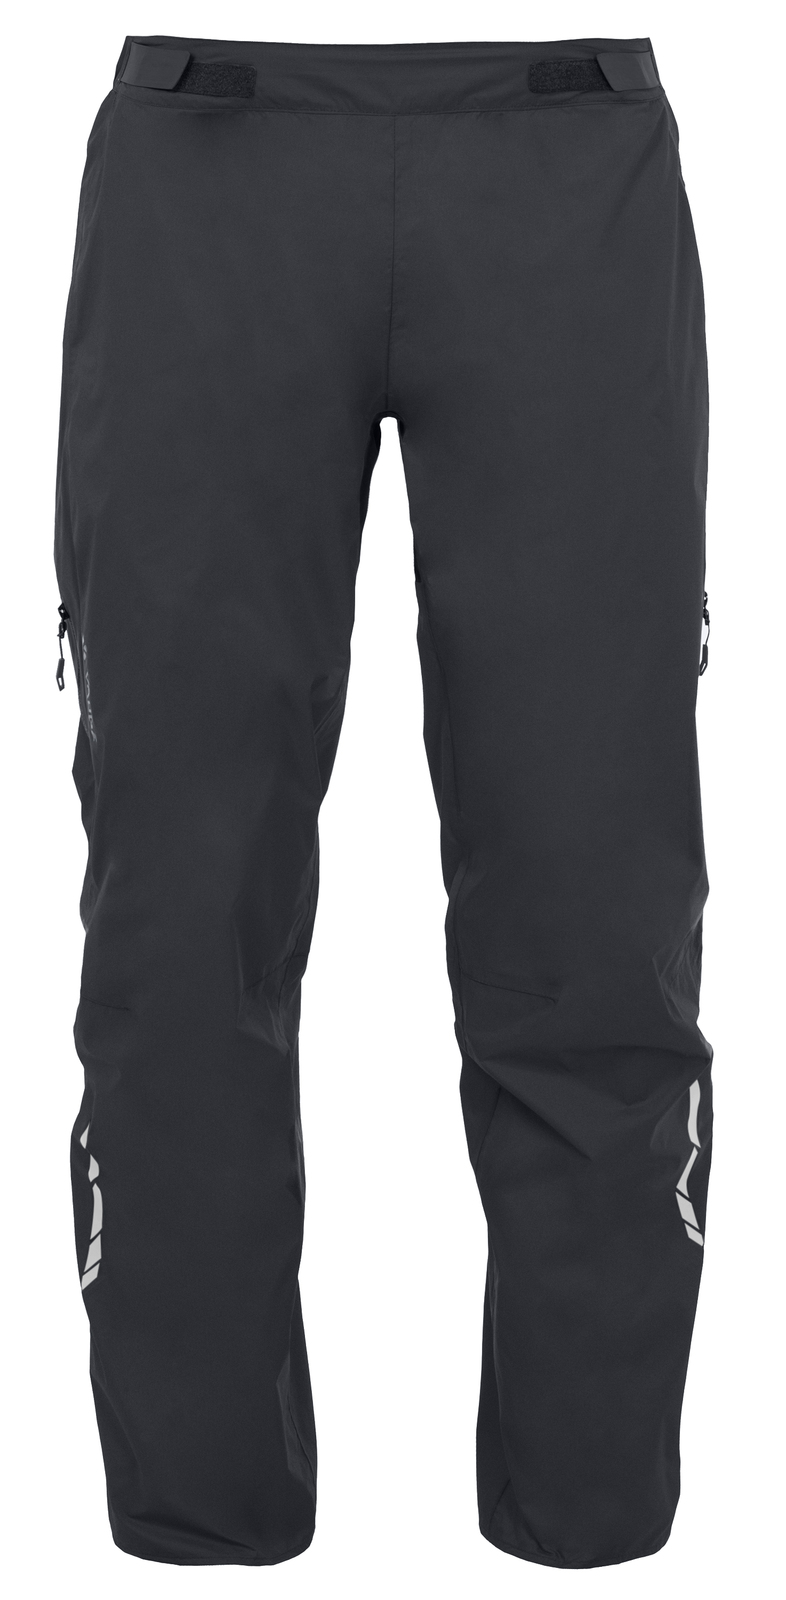 VAUDE Men´s Tremalzo Rain Pants black Größe XXL - schneider-sports